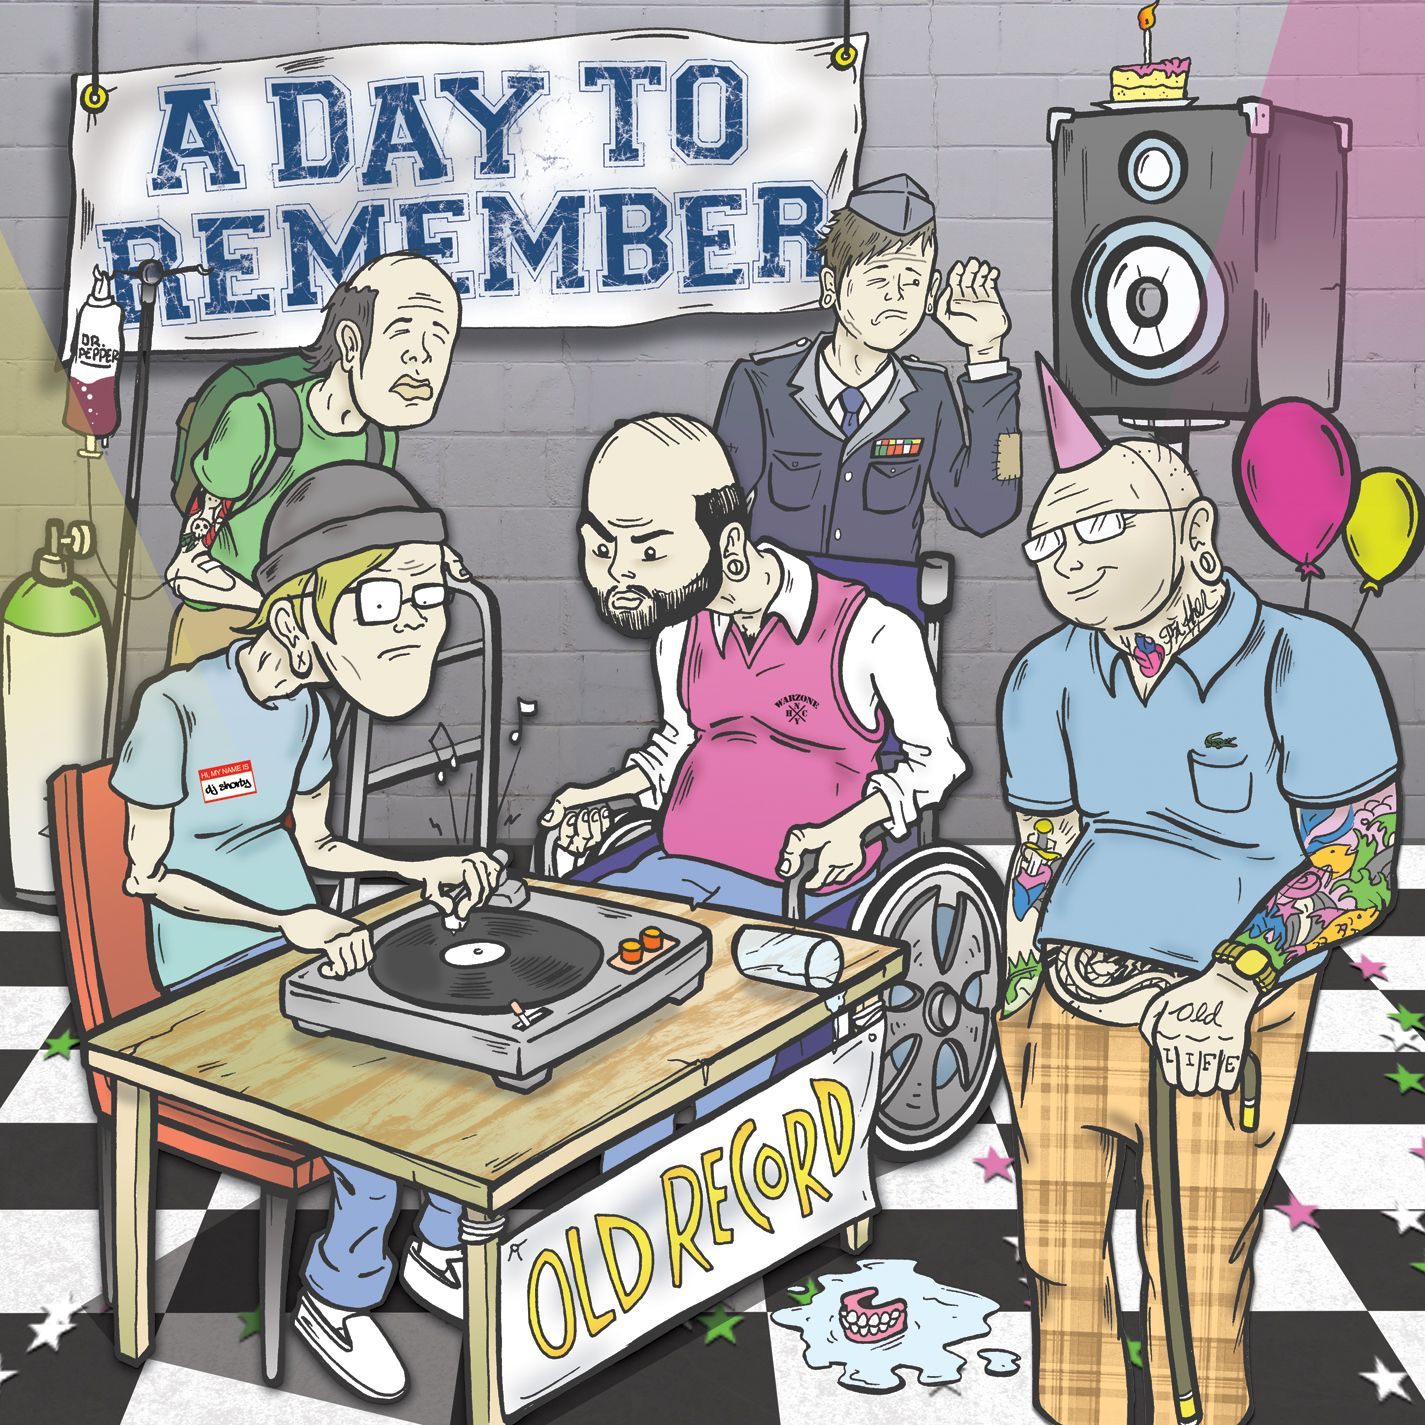 -=ADXN=-: Old Record - A Day To Remember A Day To Remember Old Record